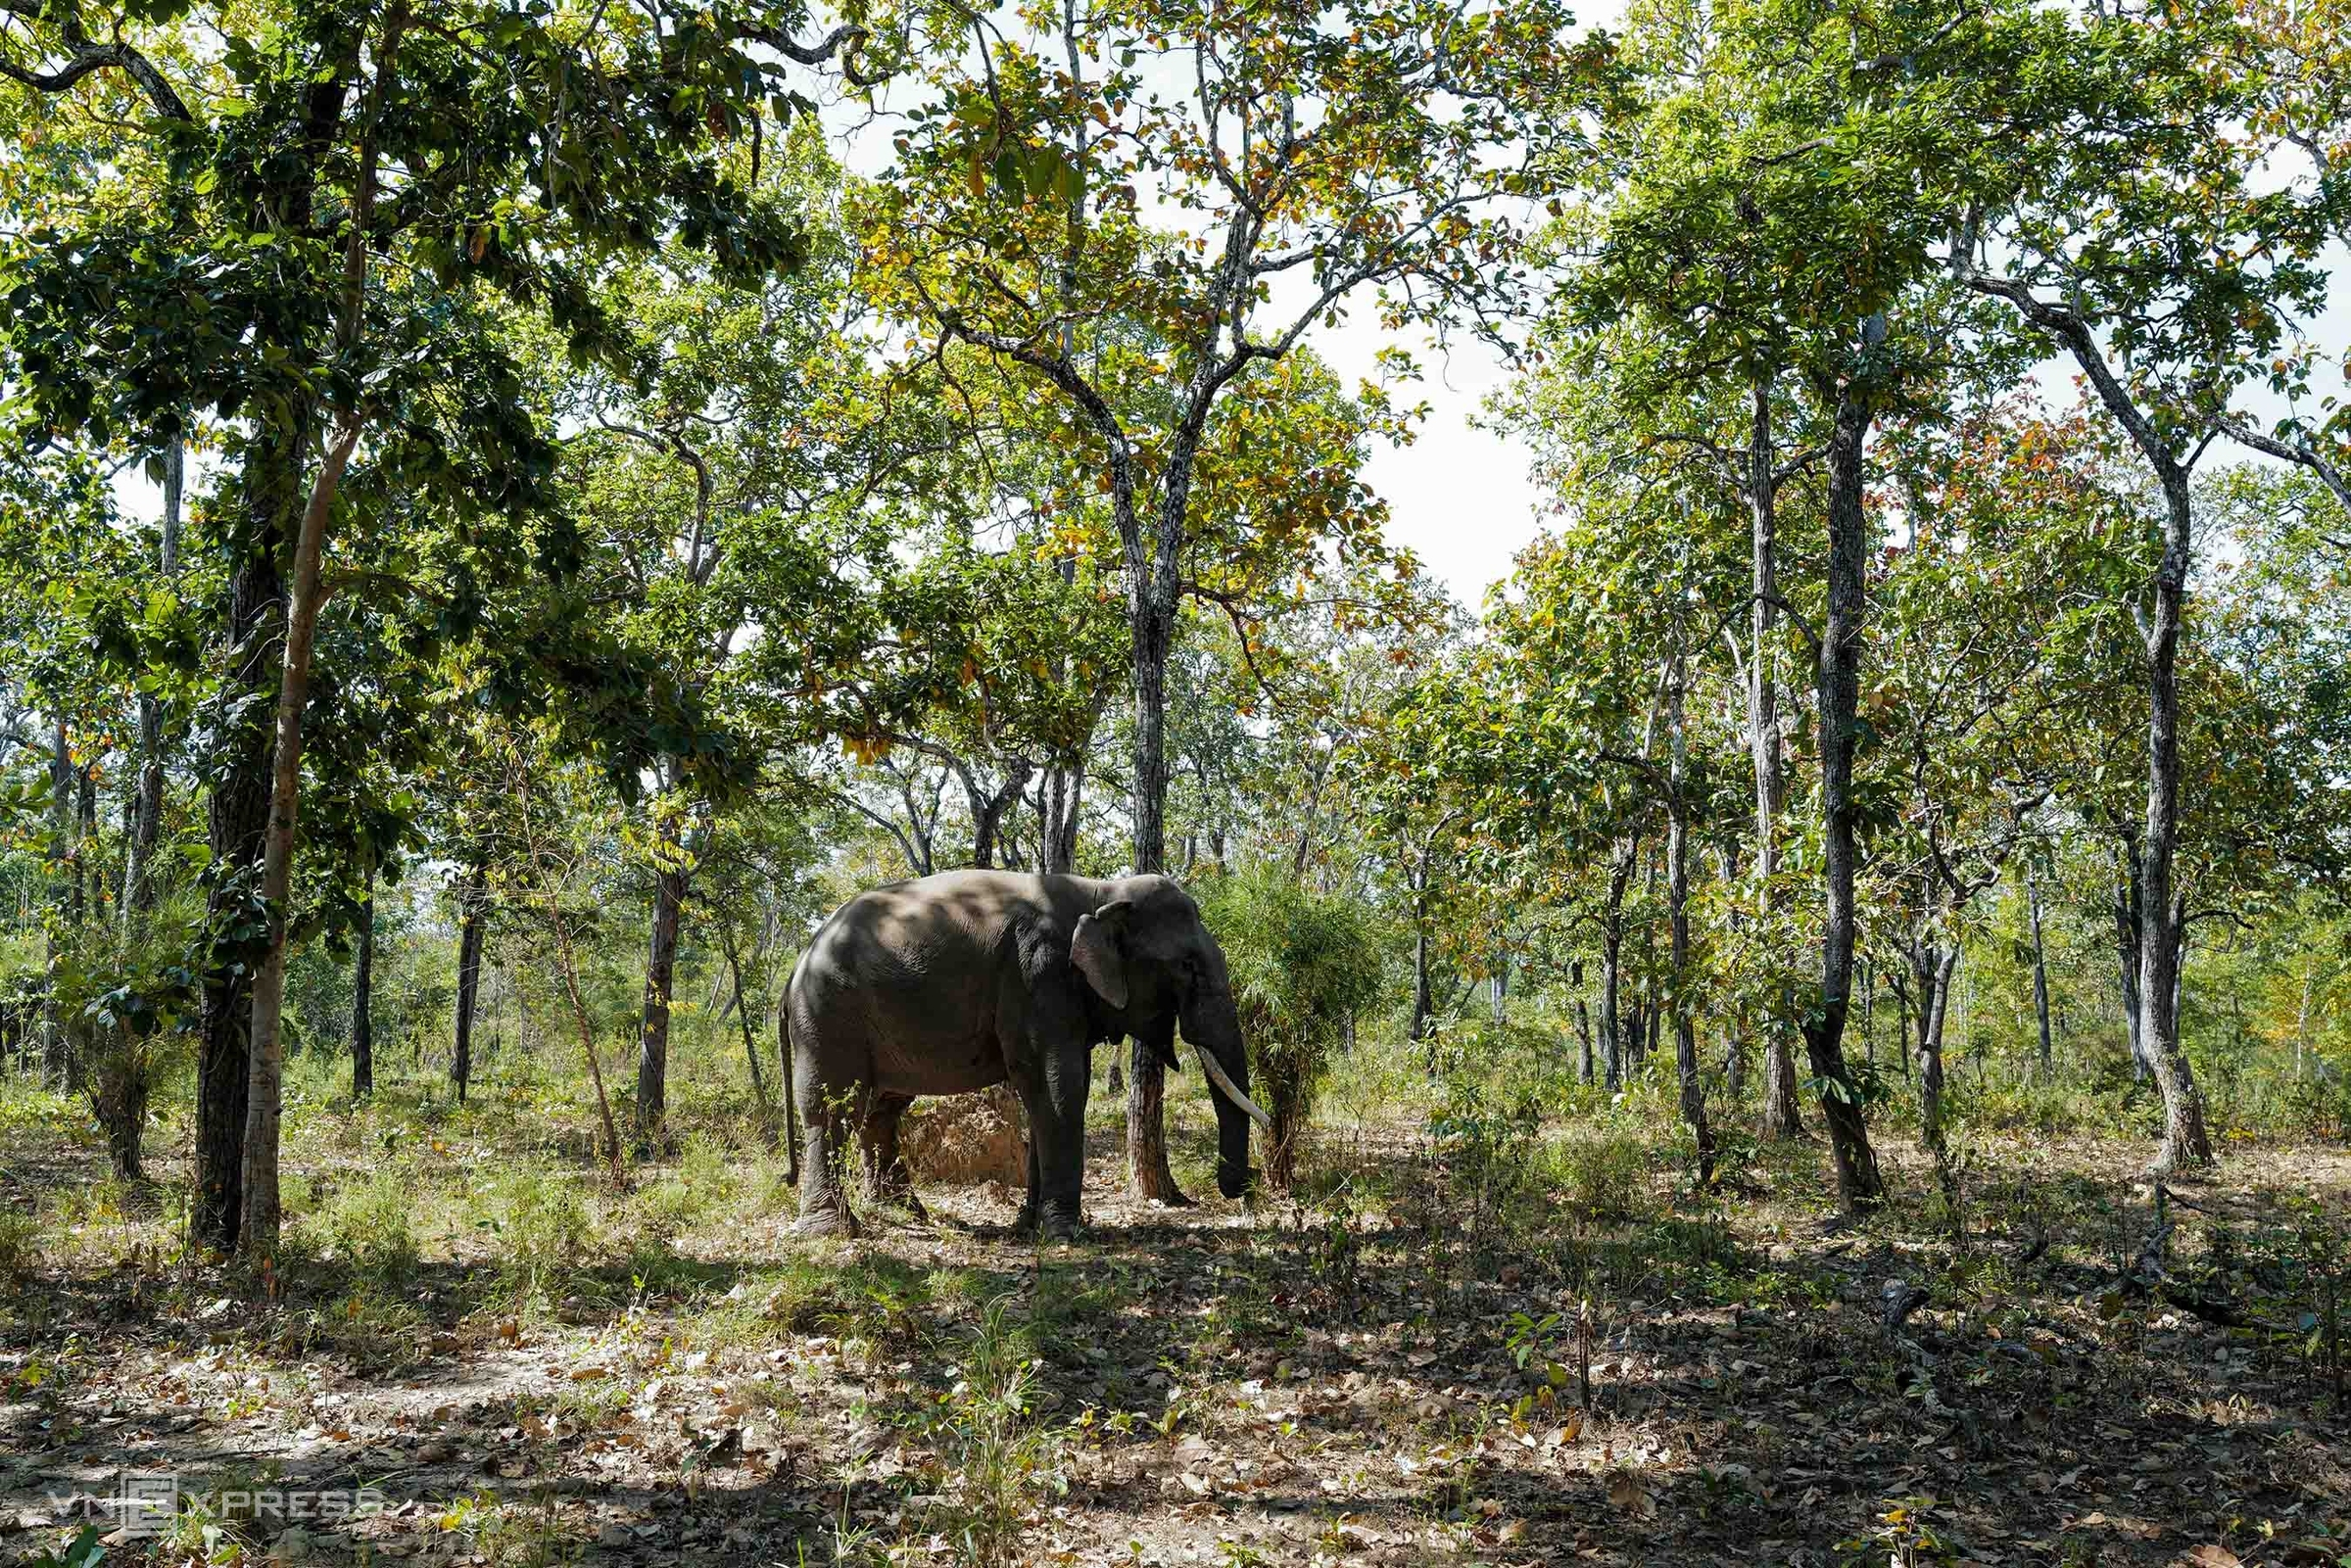 Tusked elephants find repose in Dak Lak conservation center